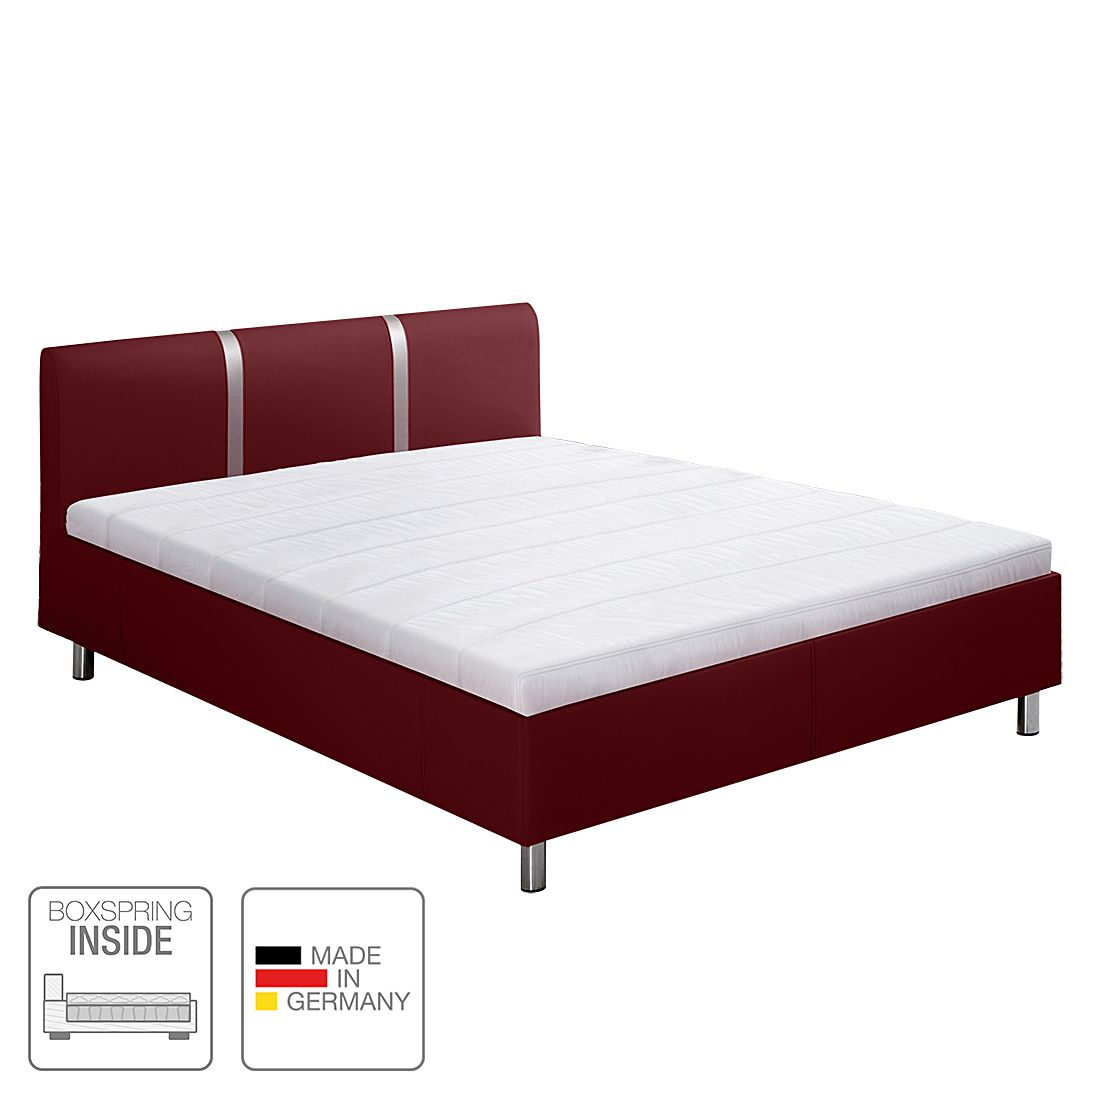 boxspring inside bett caya kunstleder 140 x 200cm h4 ab 100 kg. Black Bedroom Furniture Sets. Home Design Ideas